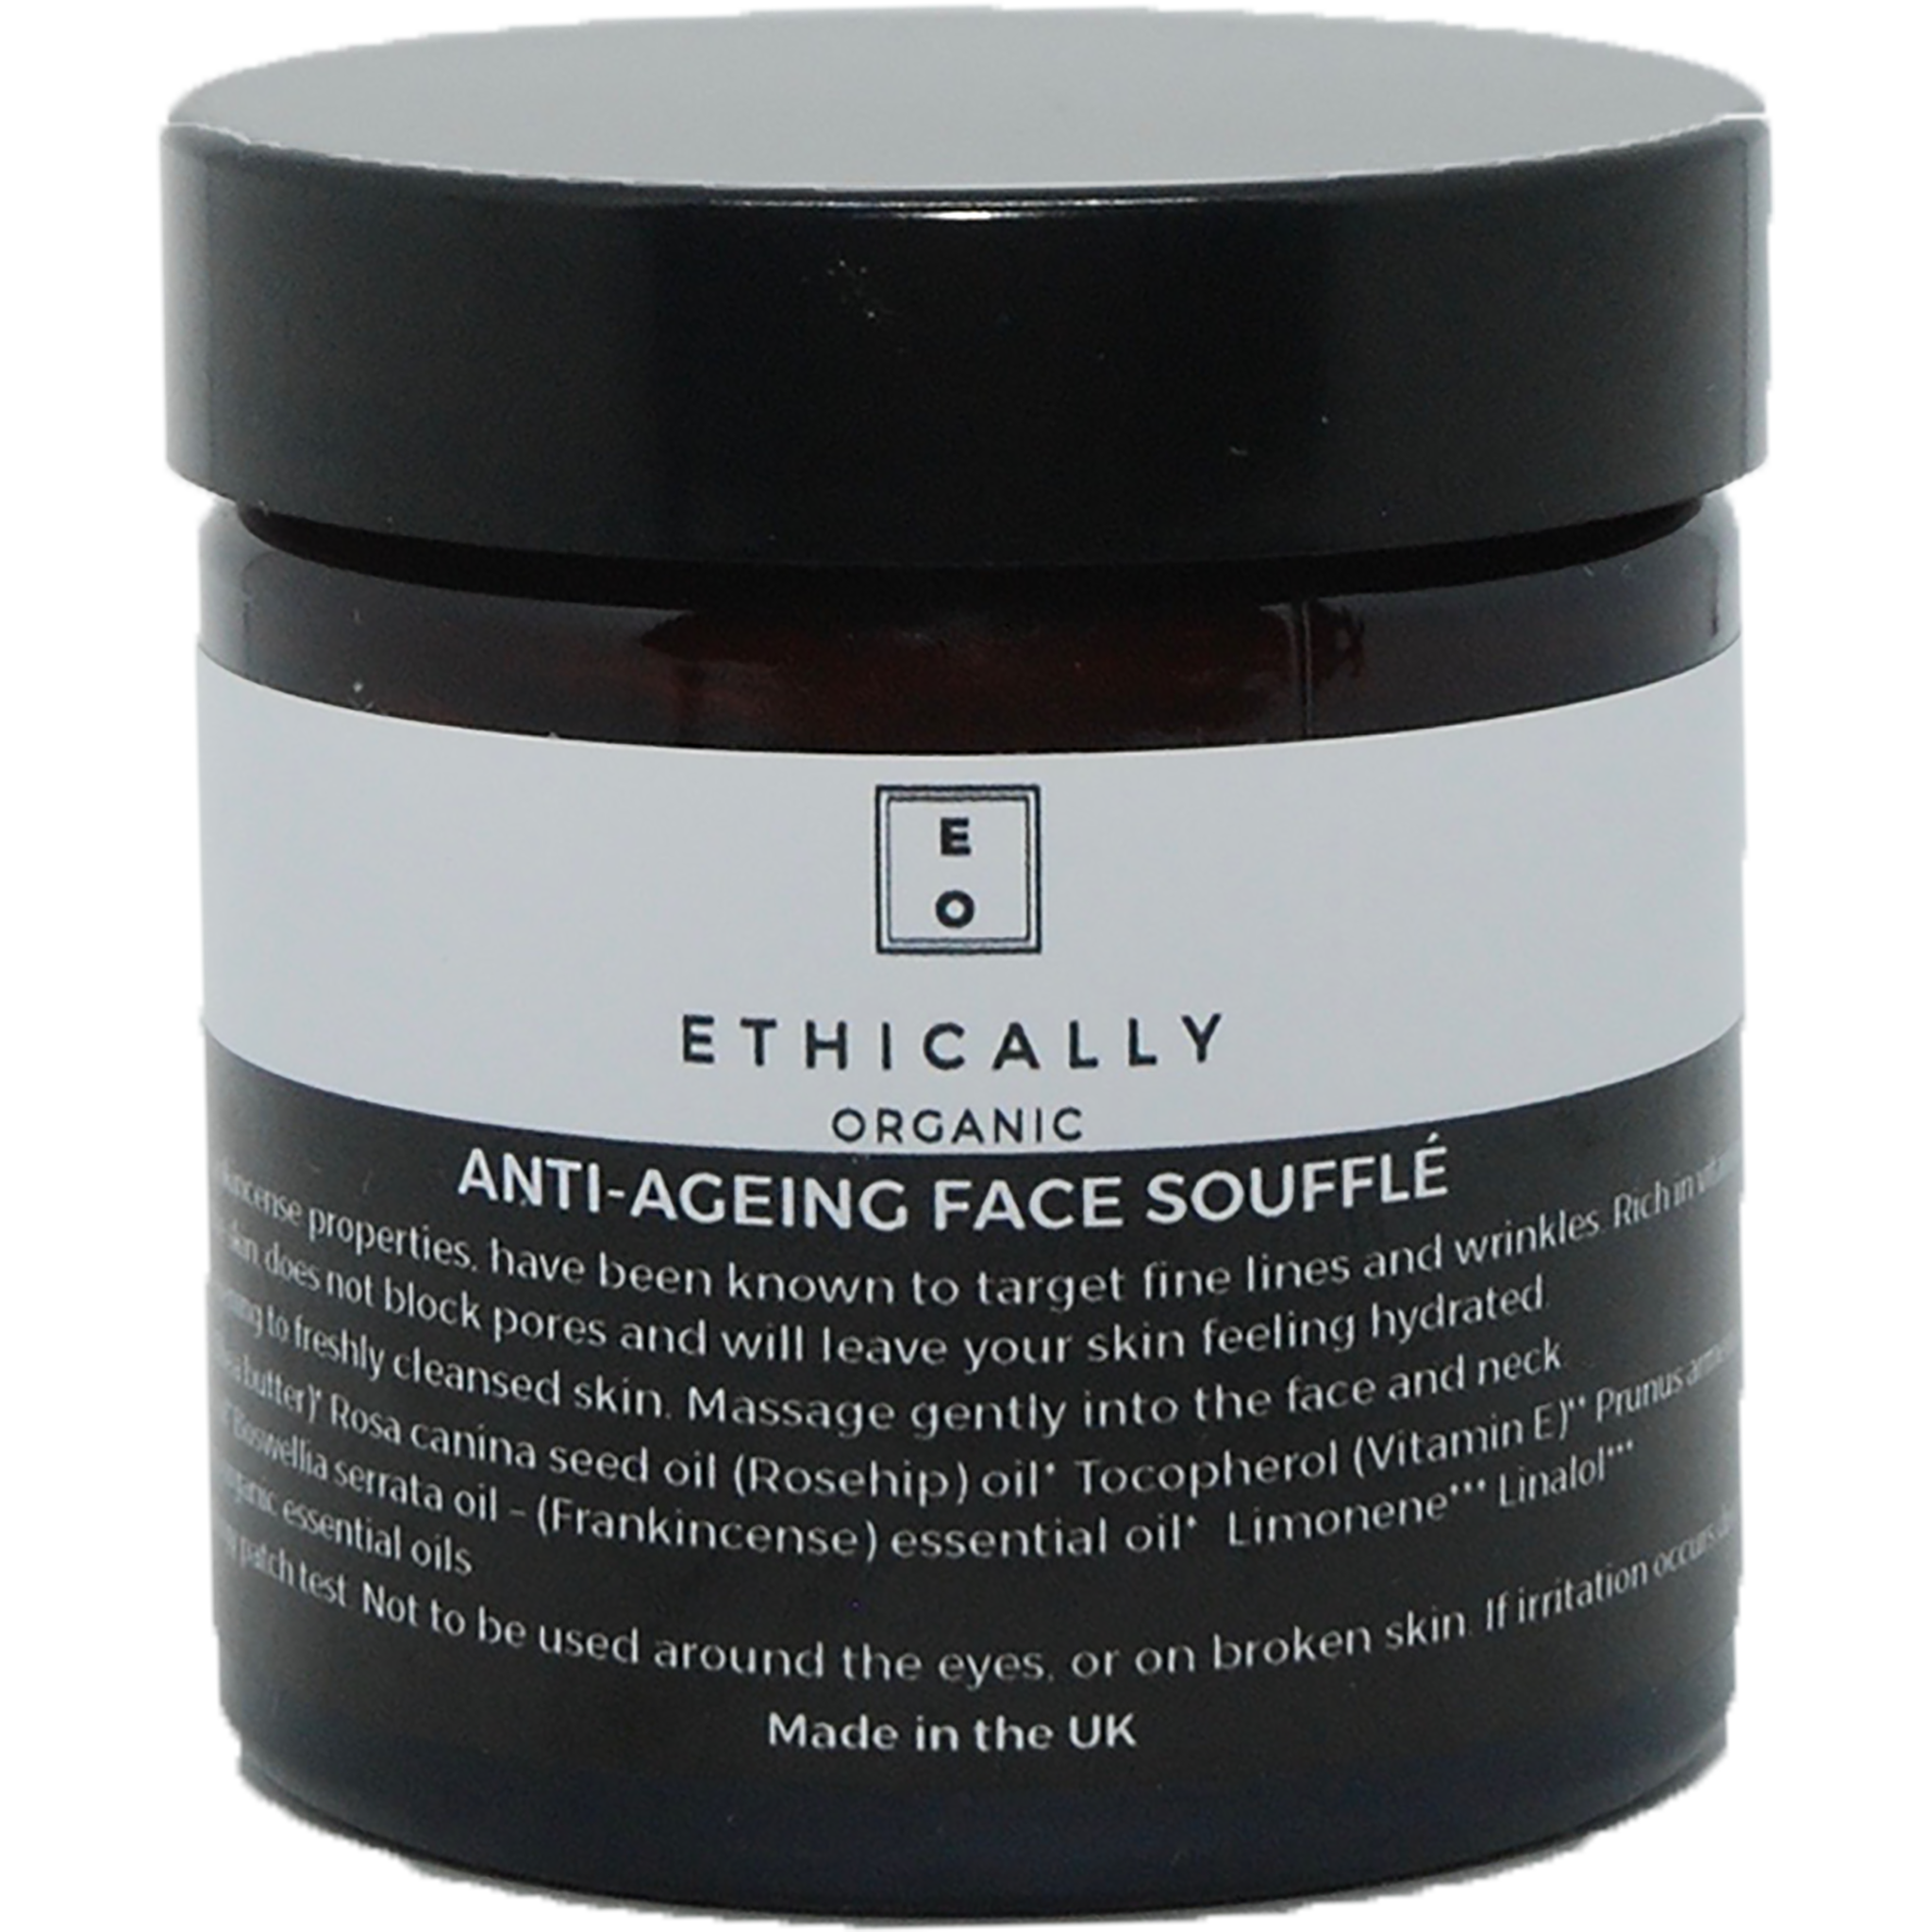 Anti Ageing Face Souffle